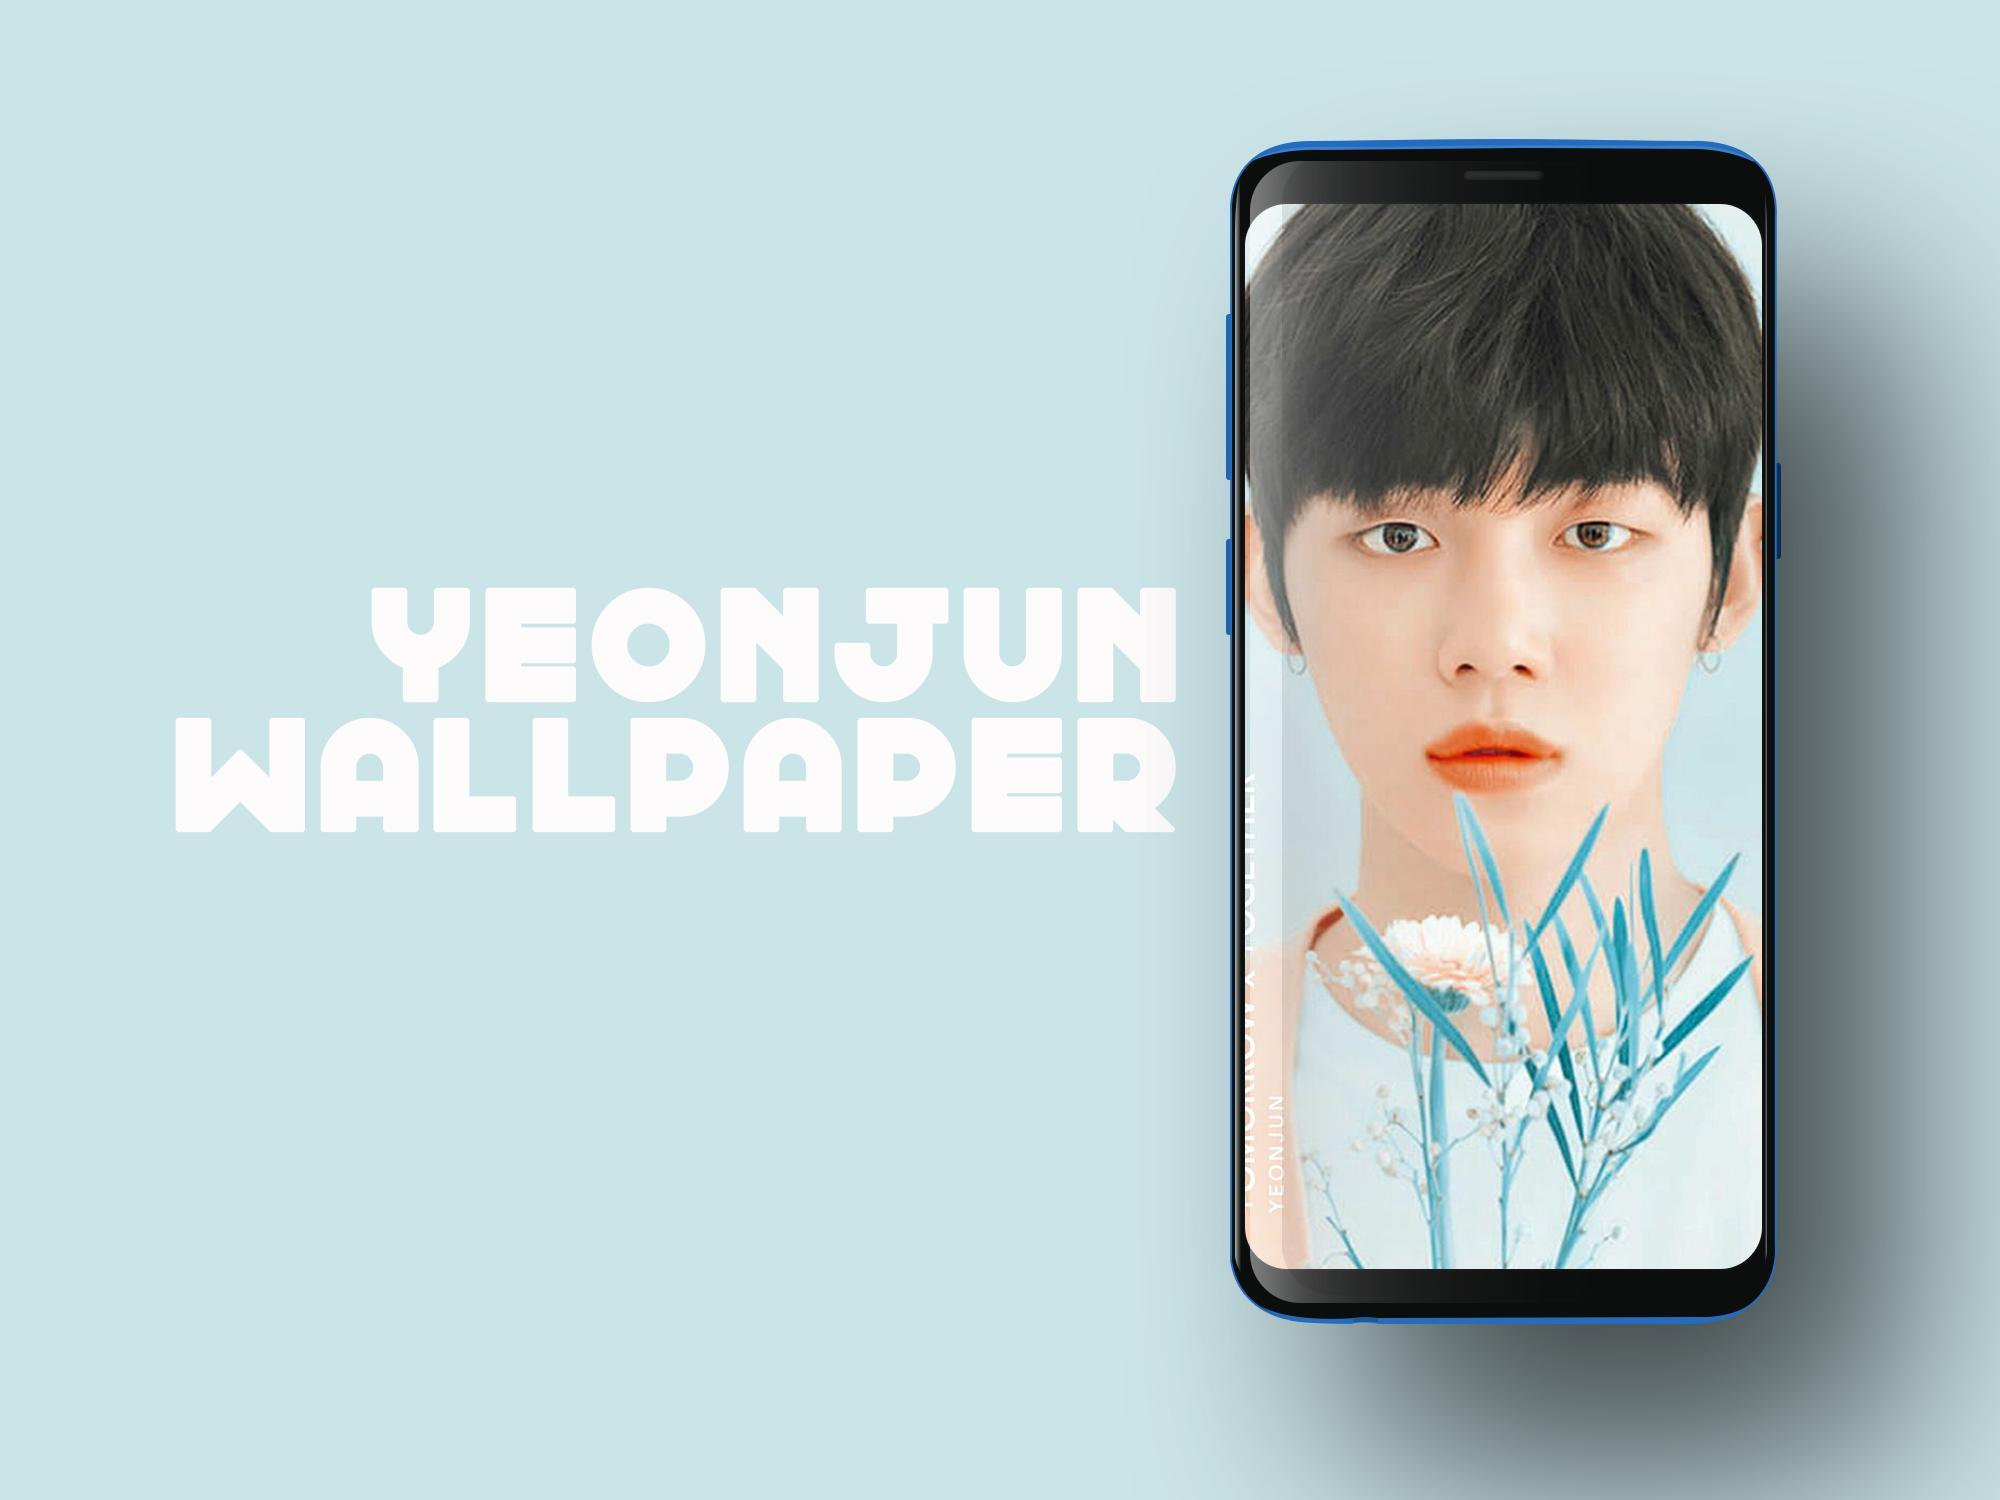 TXT Yeonjun Wallpapers KPOP Fans HD for Android - APK Download